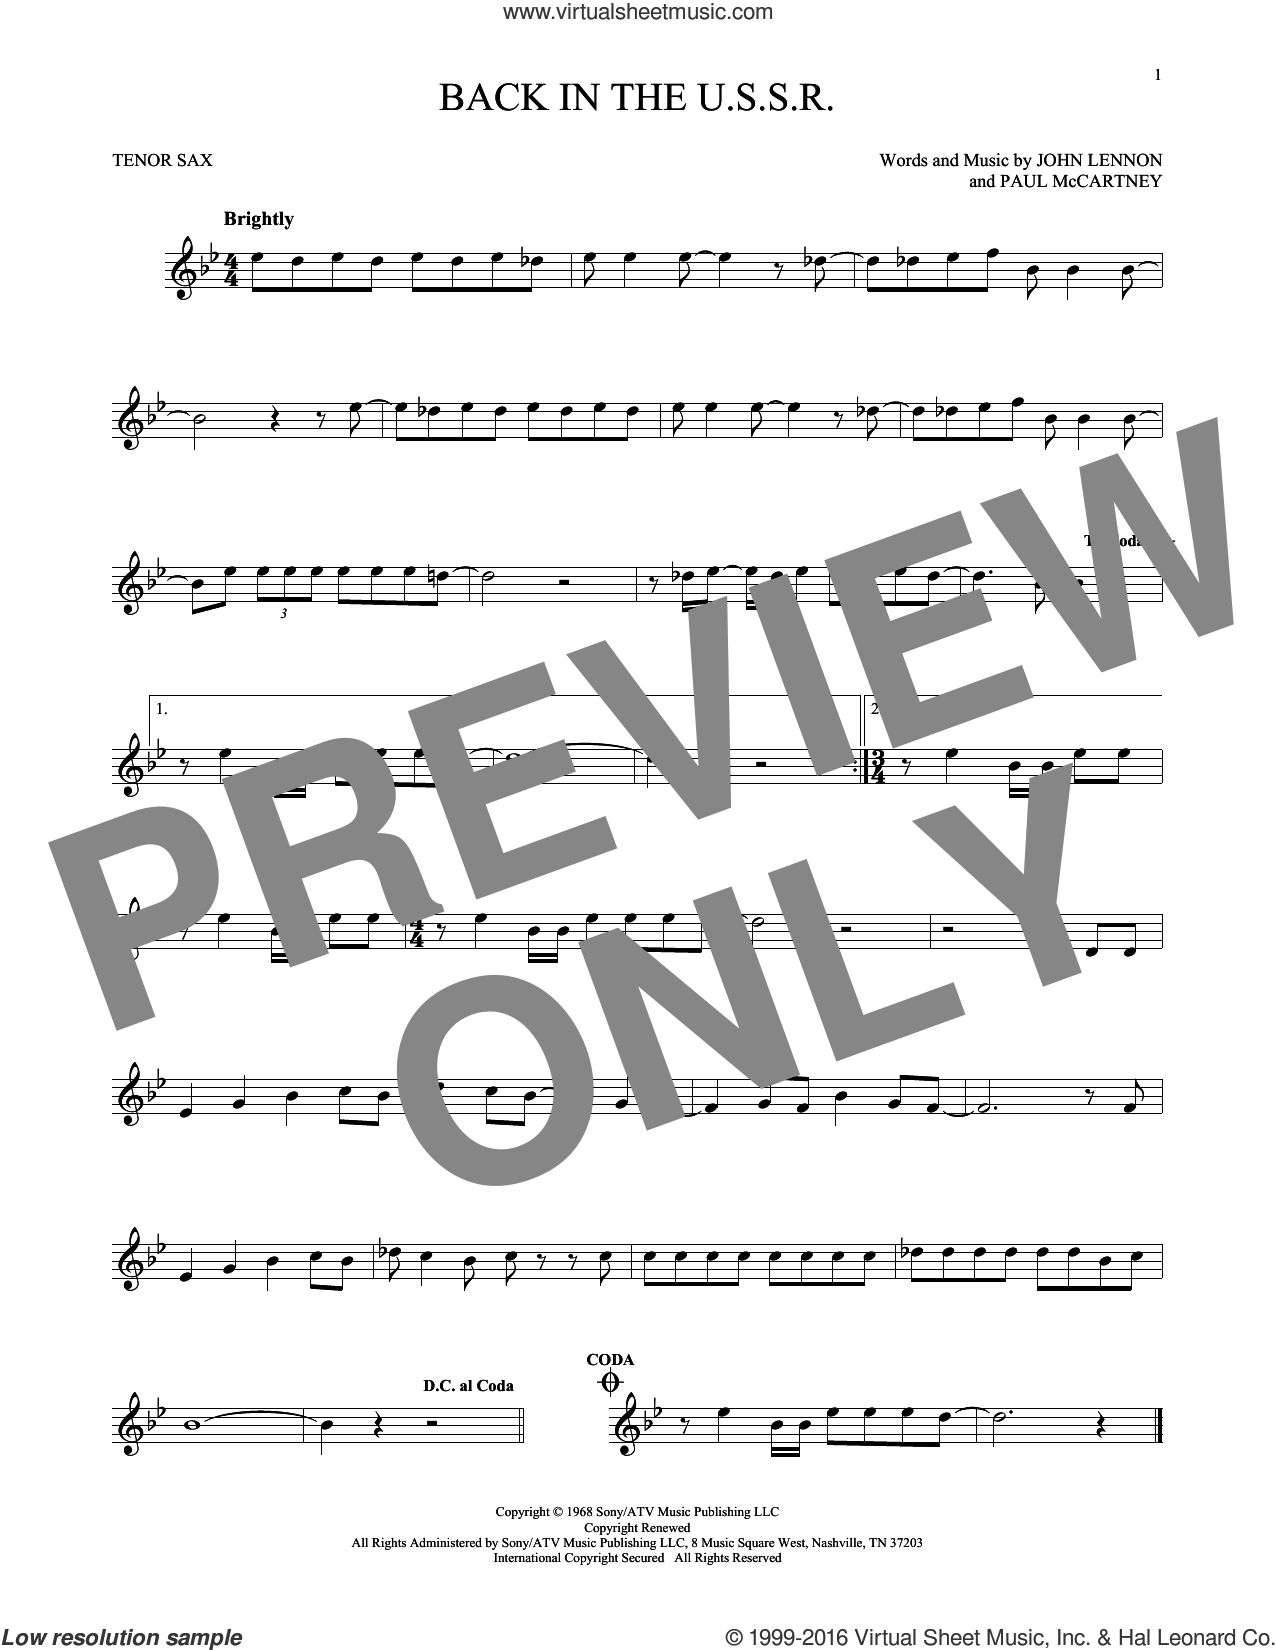 Back In The U.S.S.R. sheet music for tenor saxophone solo by The Beatles, John Lennon and Paul McCartney, intermediate skill level